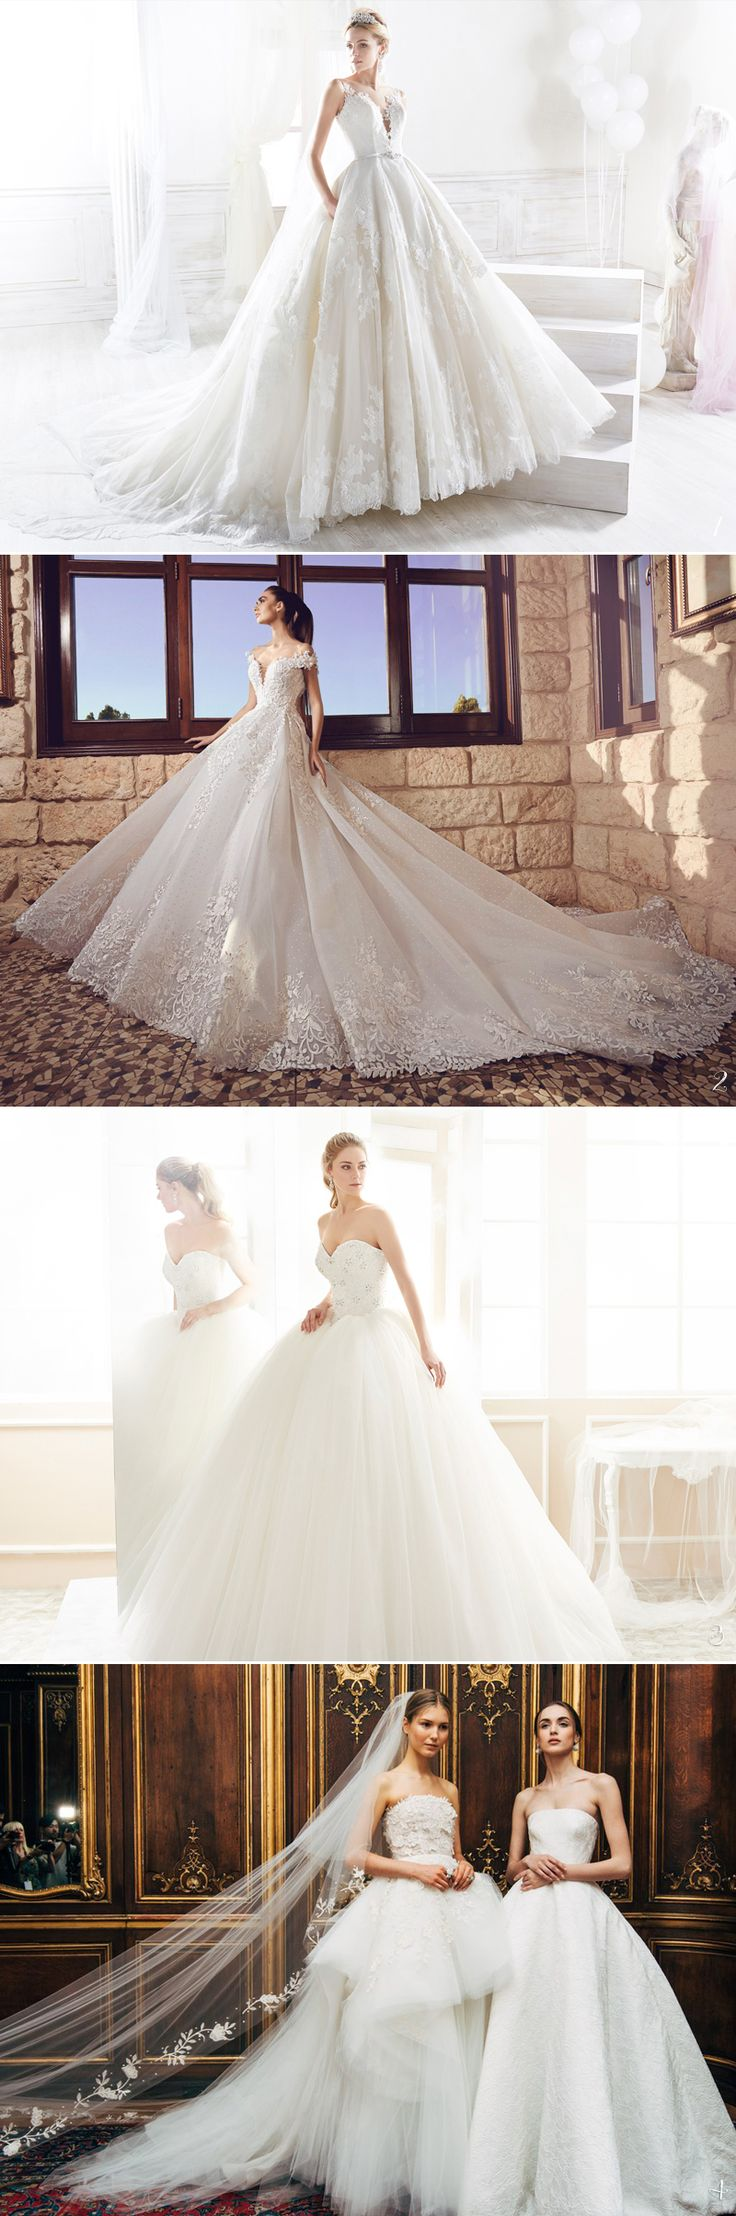 2018 Revealed! 25 Romantic Ball Gowns That Stole Our Hearts - Classic Ball Gowns